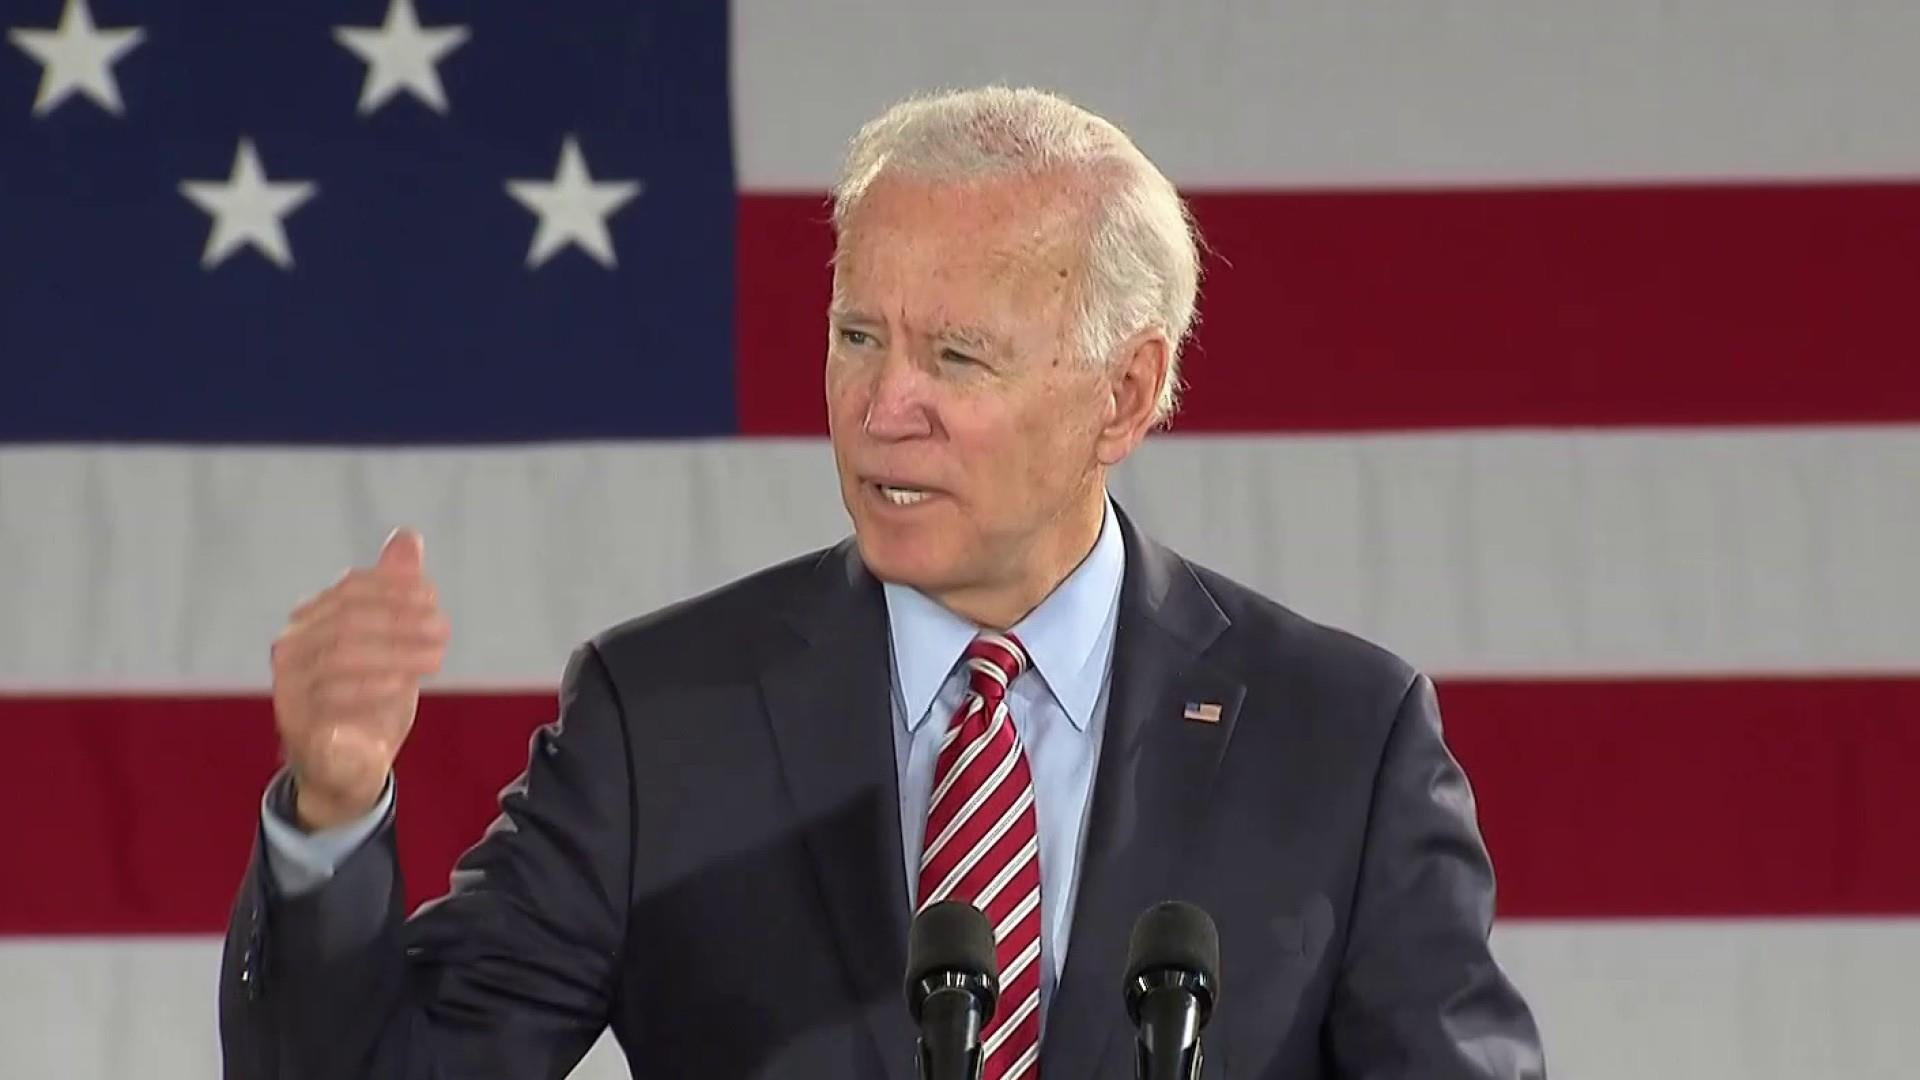 Trump, Biden hold dueling events in swing state Pennsylvania